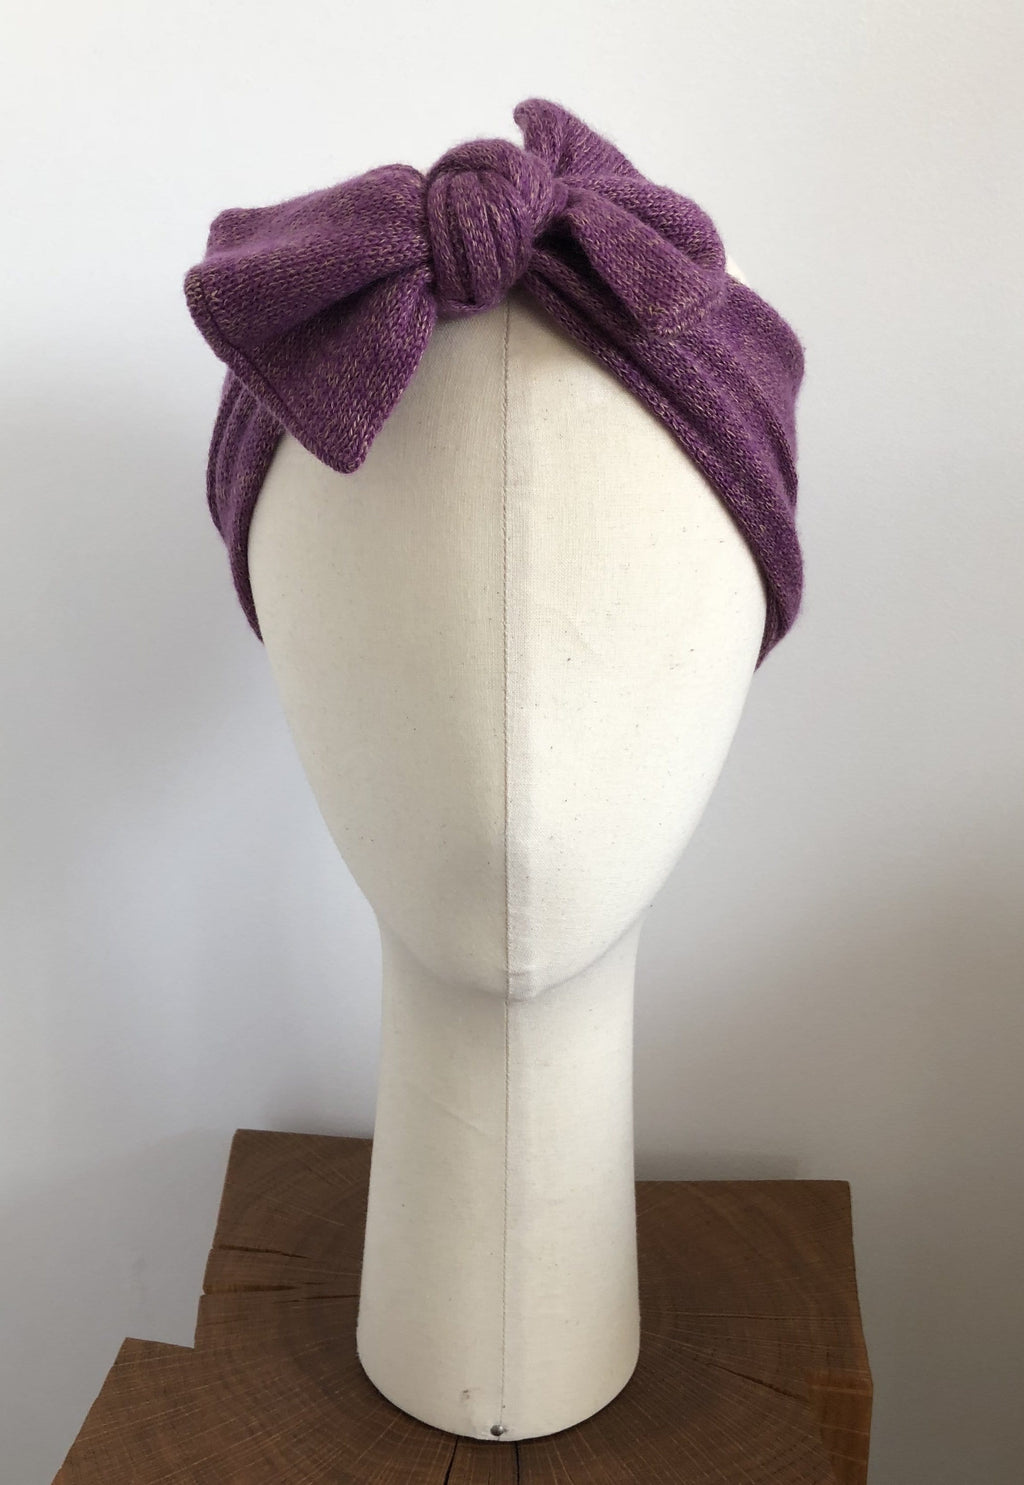 Headband avec noeud Evesome 58% cachemire 42% lin - Headband with bow Evesome 58% cashmere 42% linen